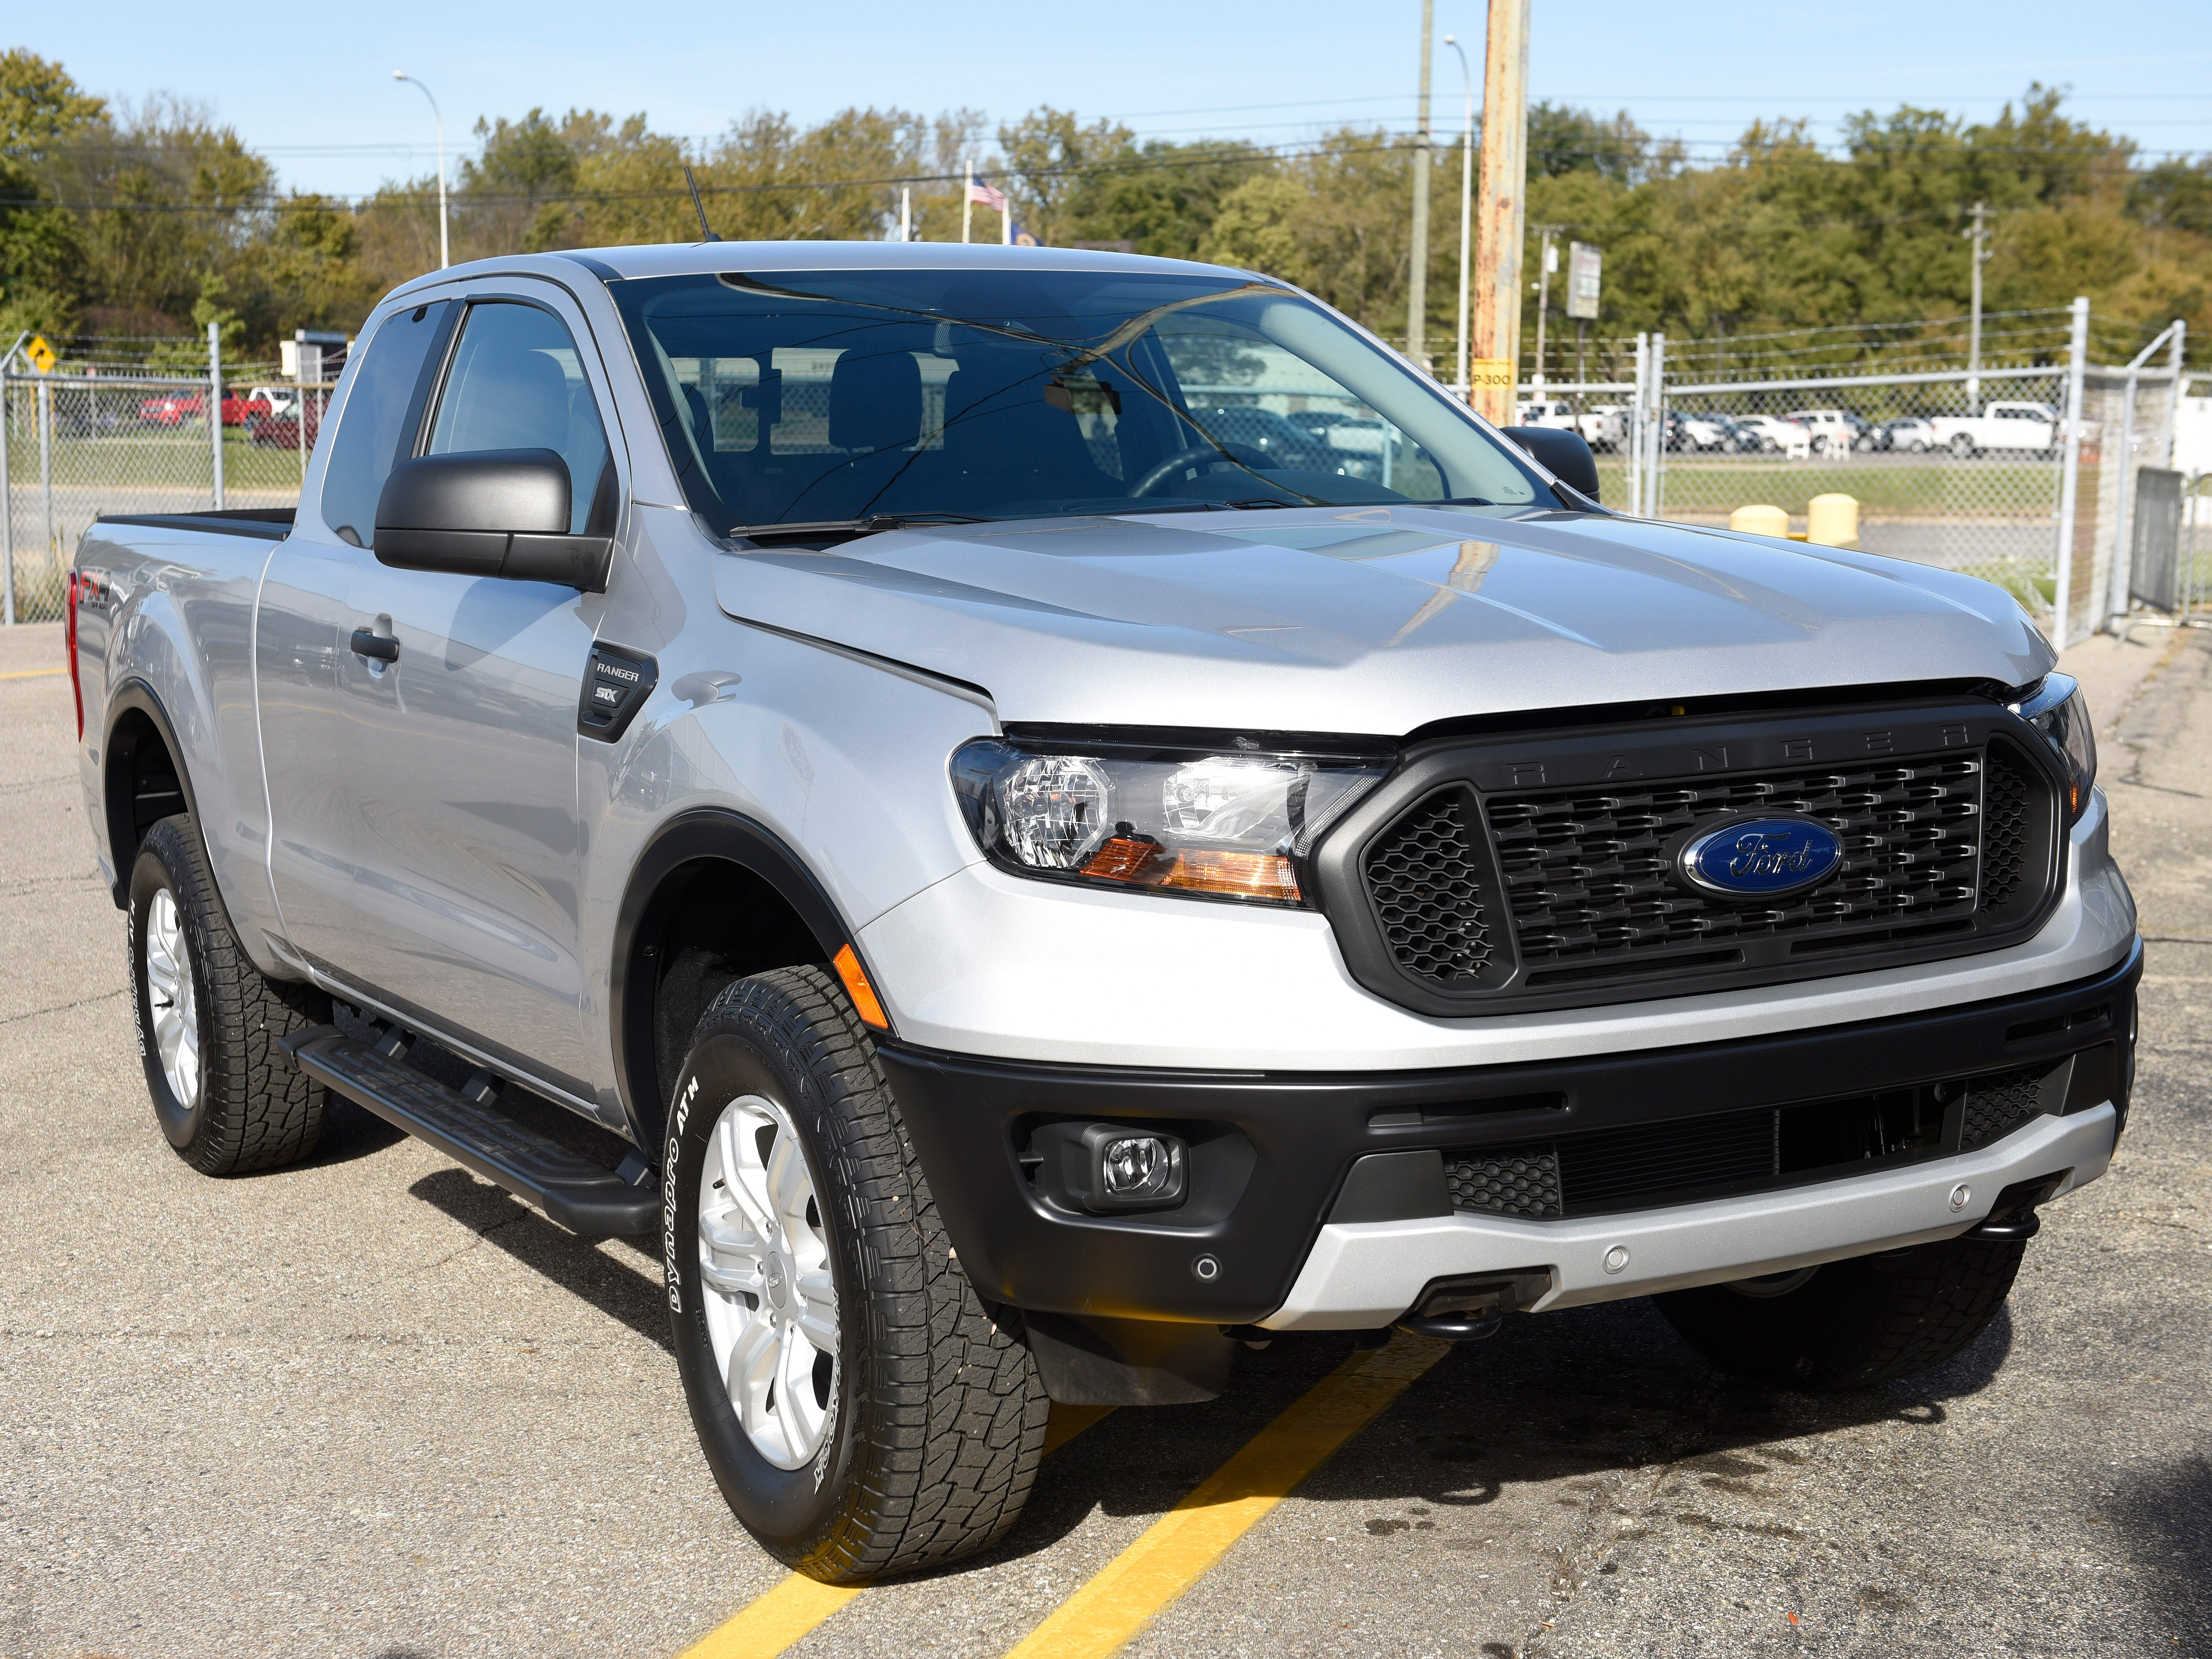 Ford held a celebratory event outside the factory Monday, a week ahead of the official launch, so that factory workers could get rides in hand-built models and check out the midsize pickup's features and after-market add-ons the automaker is planning.